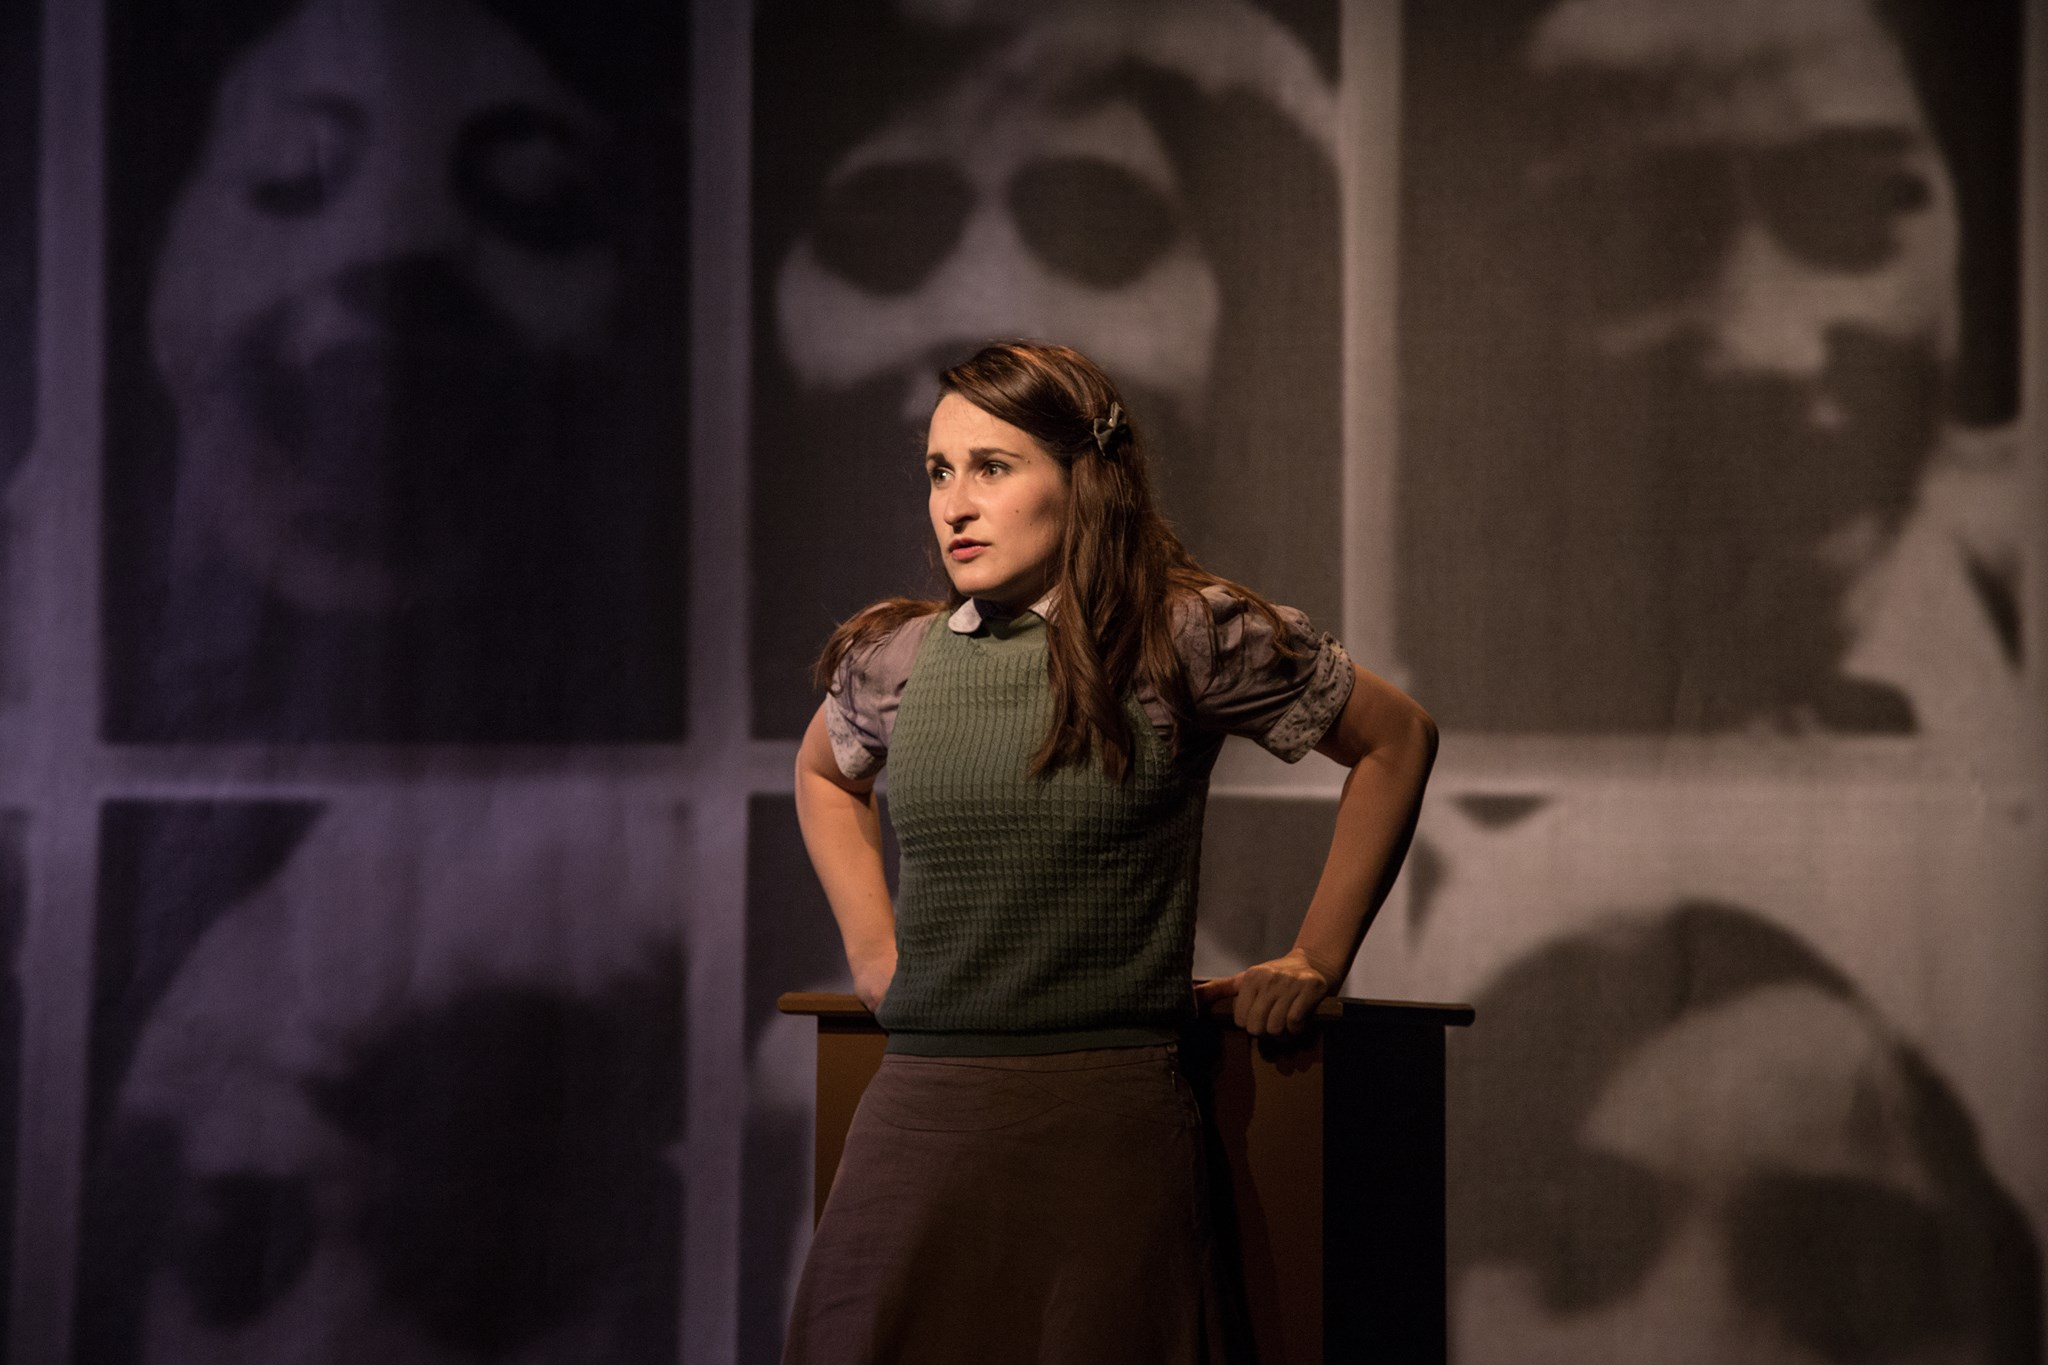 Anne Frank in the mono-opera THE DIARY OF ANNE FRANK at the Edinburgh Festival Fringe (2016) - Soprano Polly Ott is a fantastic communicator, simultaneously radiating the exuberance and vulnerability of a young teenage girl, with an alluring voice and perfect annunciation throughout. (Five Stars) Miranda Heggie, Herald ScotlandPolly Ott is outstanding in the role of Anne, and as the sole performer (apart from piano) of this work, gives us not only great vocals as the diary is read out in songs specially written for this work, but a fine acting performance. Tom King, Southside Advertiser